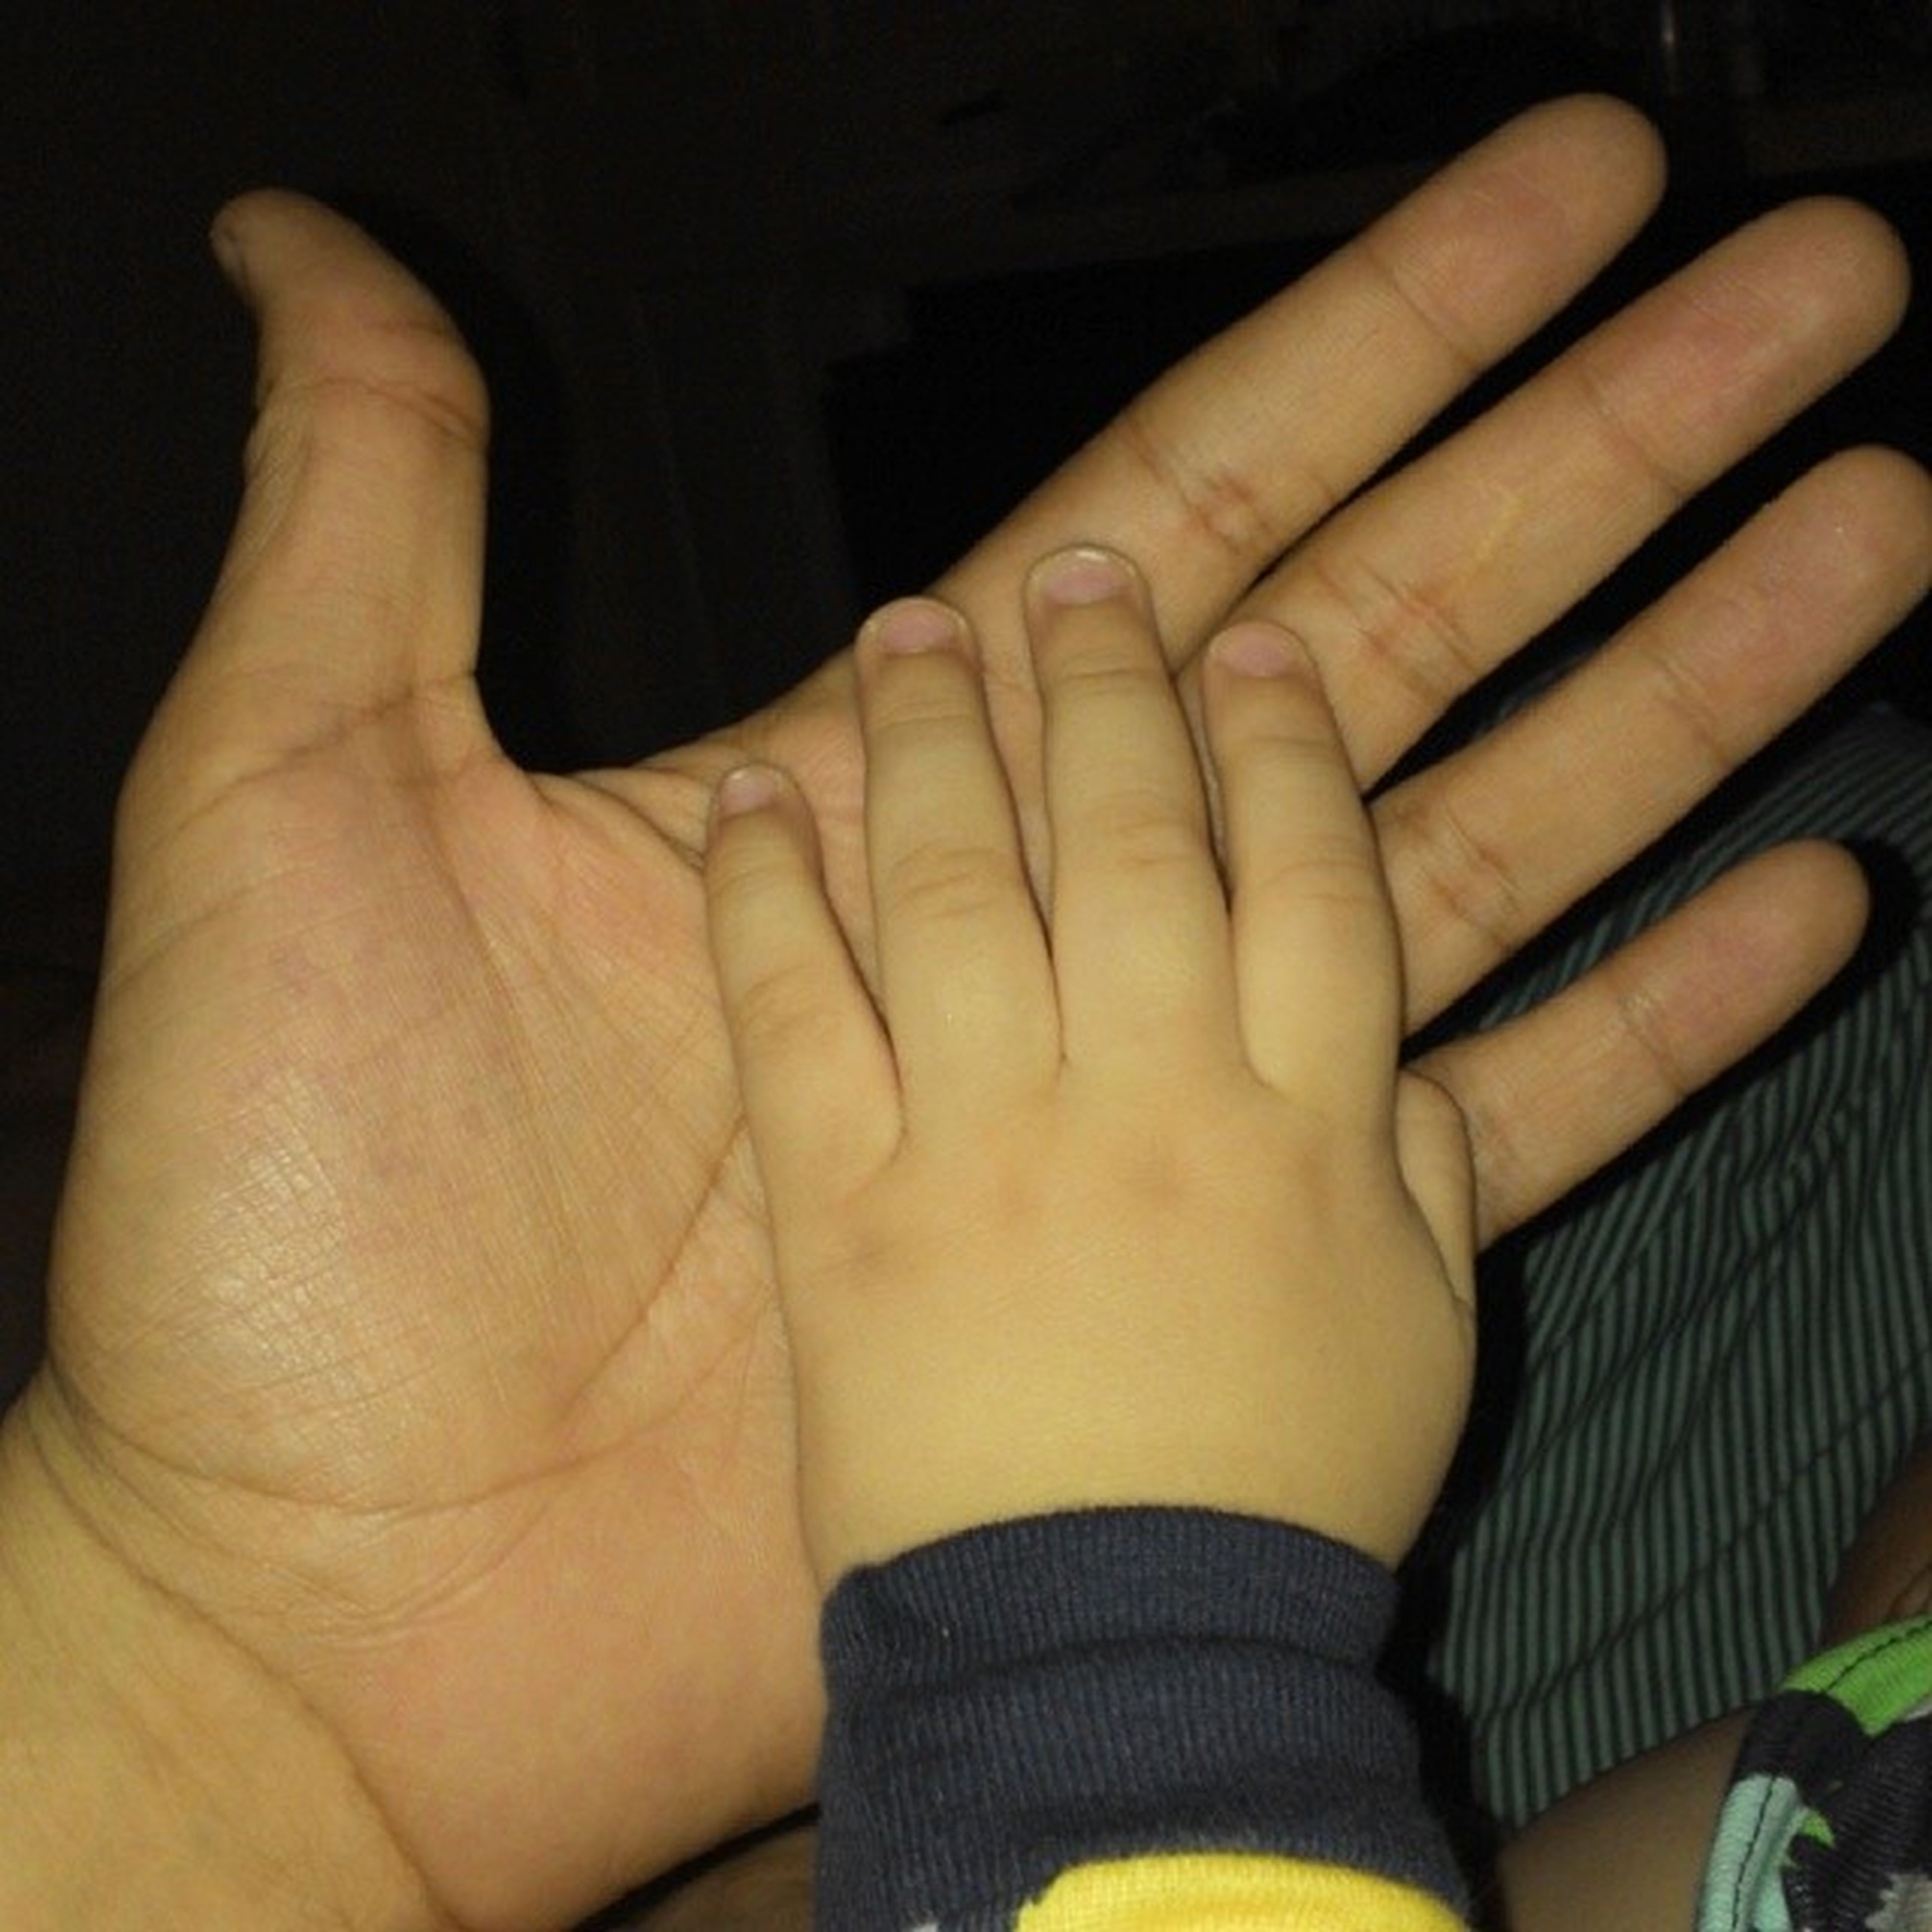 person, lifestyles, part of, love, togetherness, bonding, close-up, leisure activity, human finger, indoors, family with one child, unknown gender, baby, holding hands